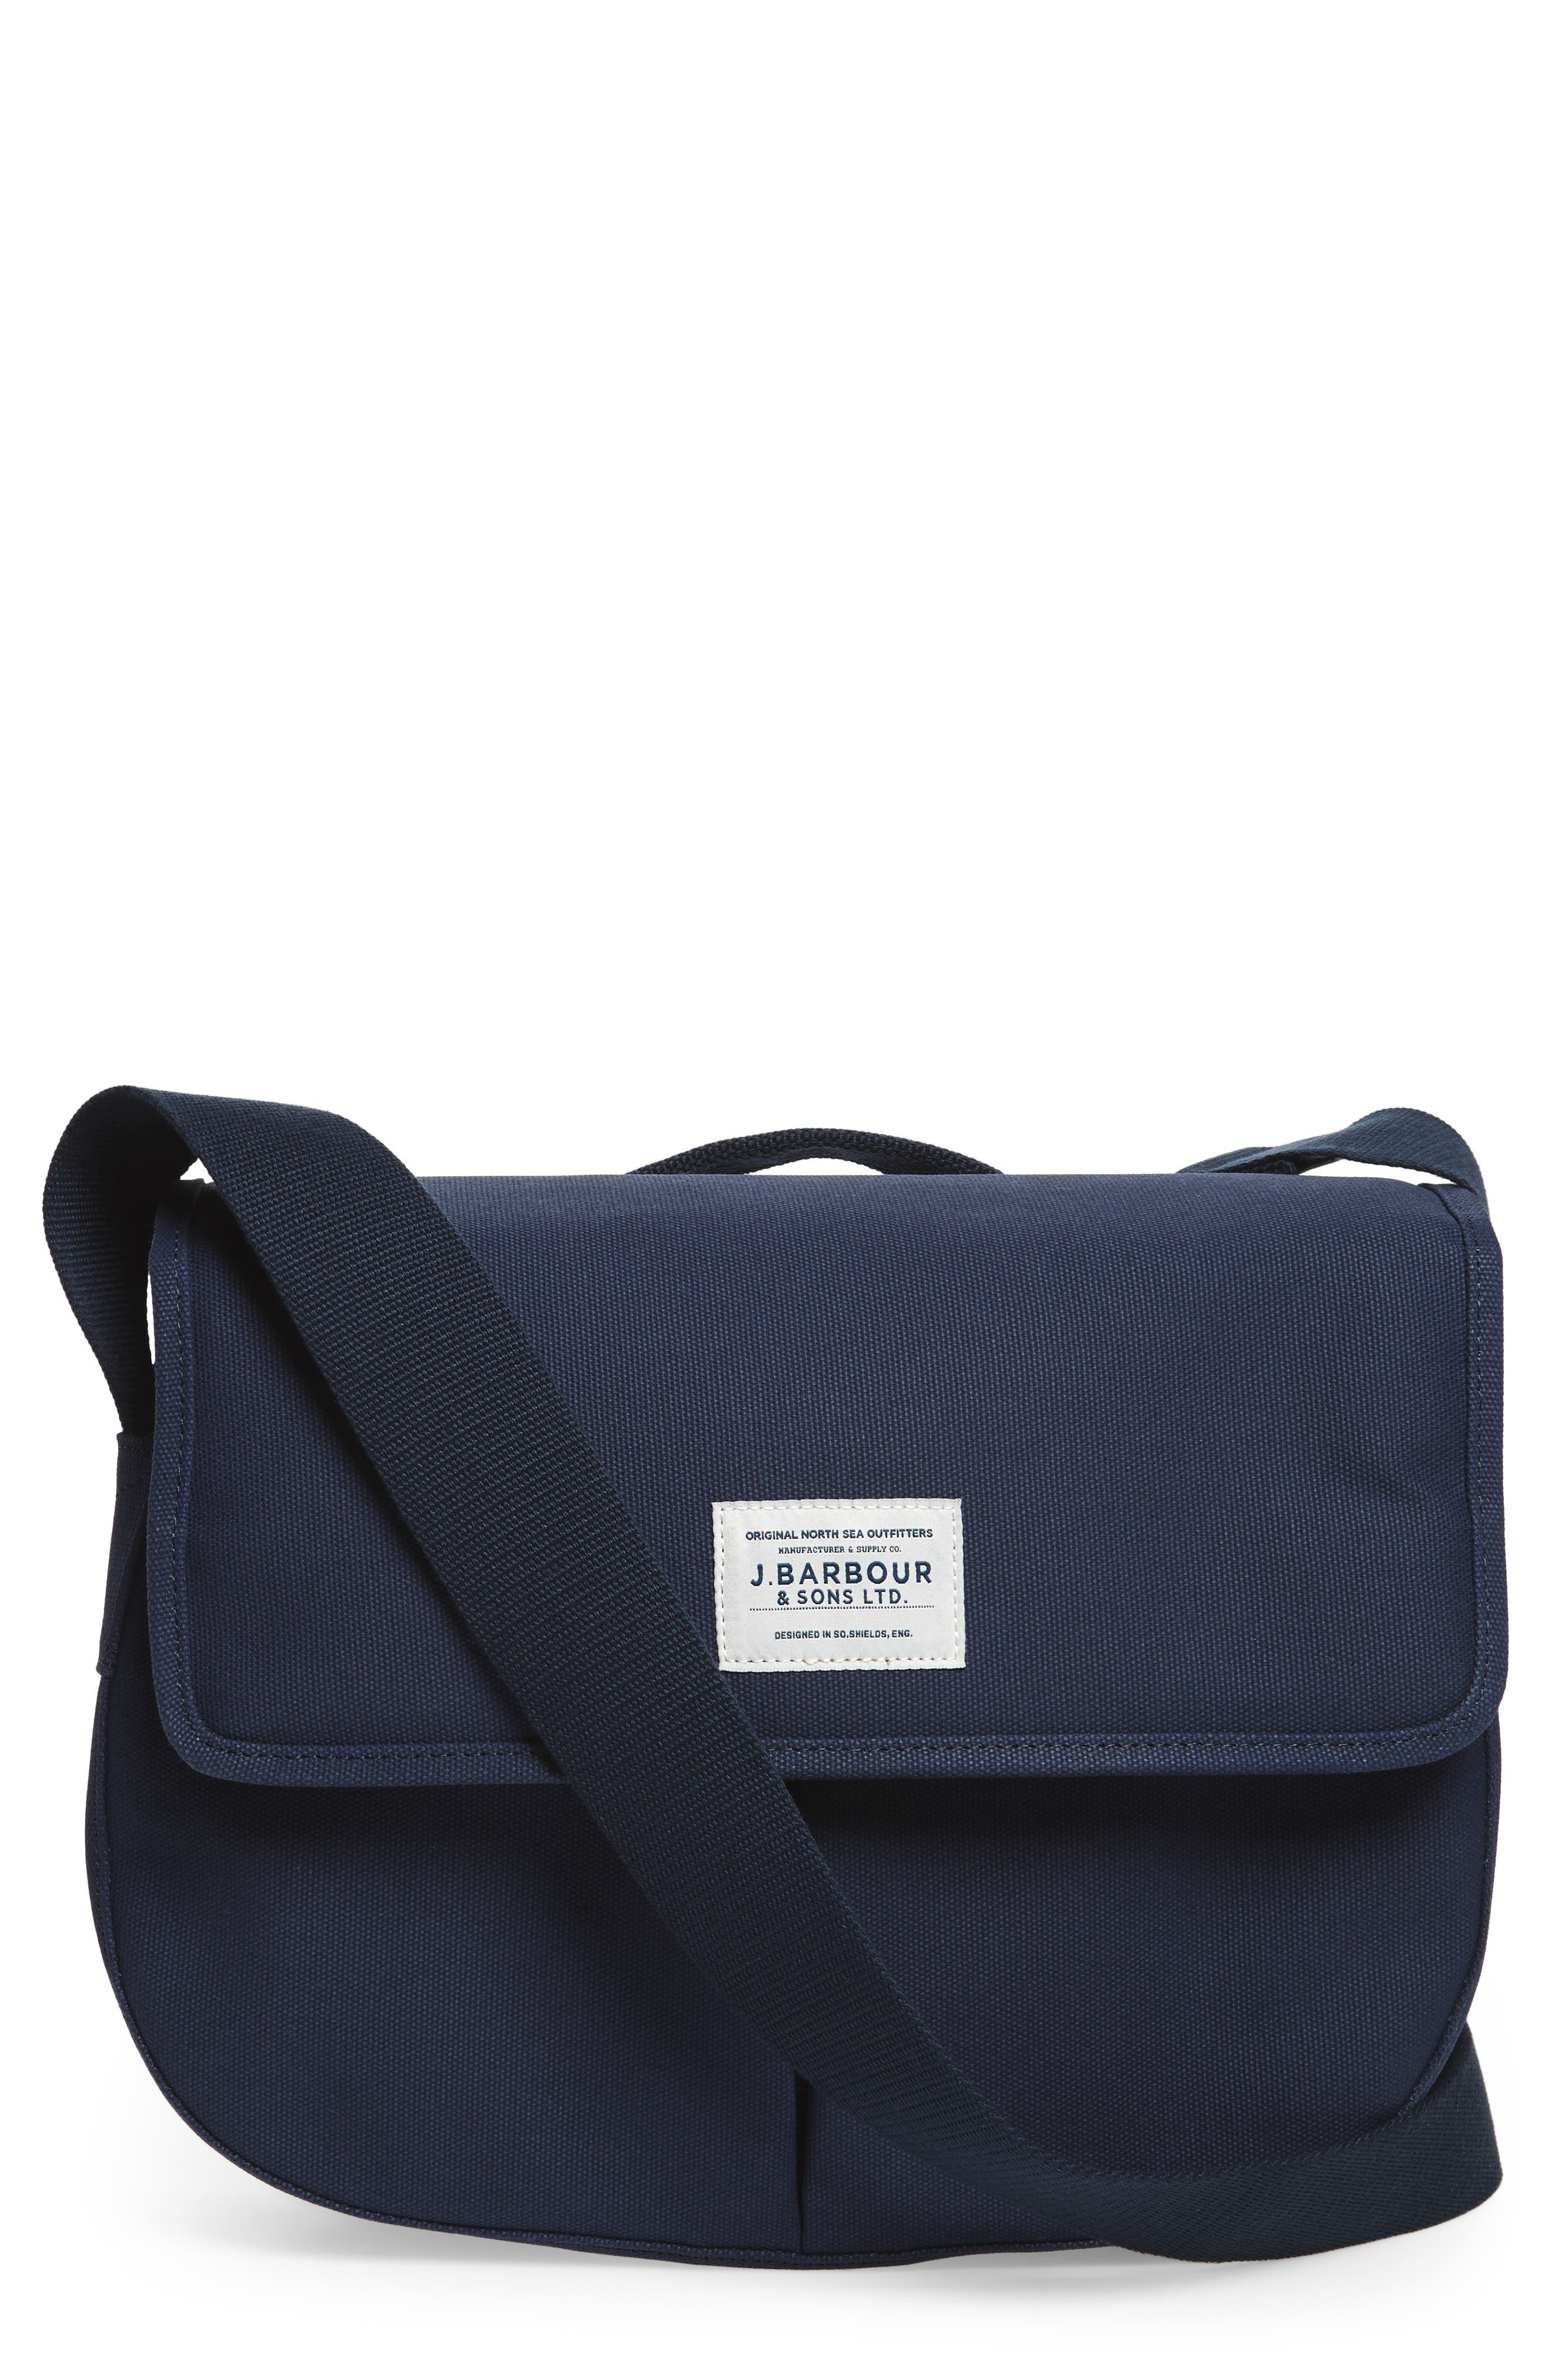 Barbour Tarras Canvas Messenger Bag Blue In Navy